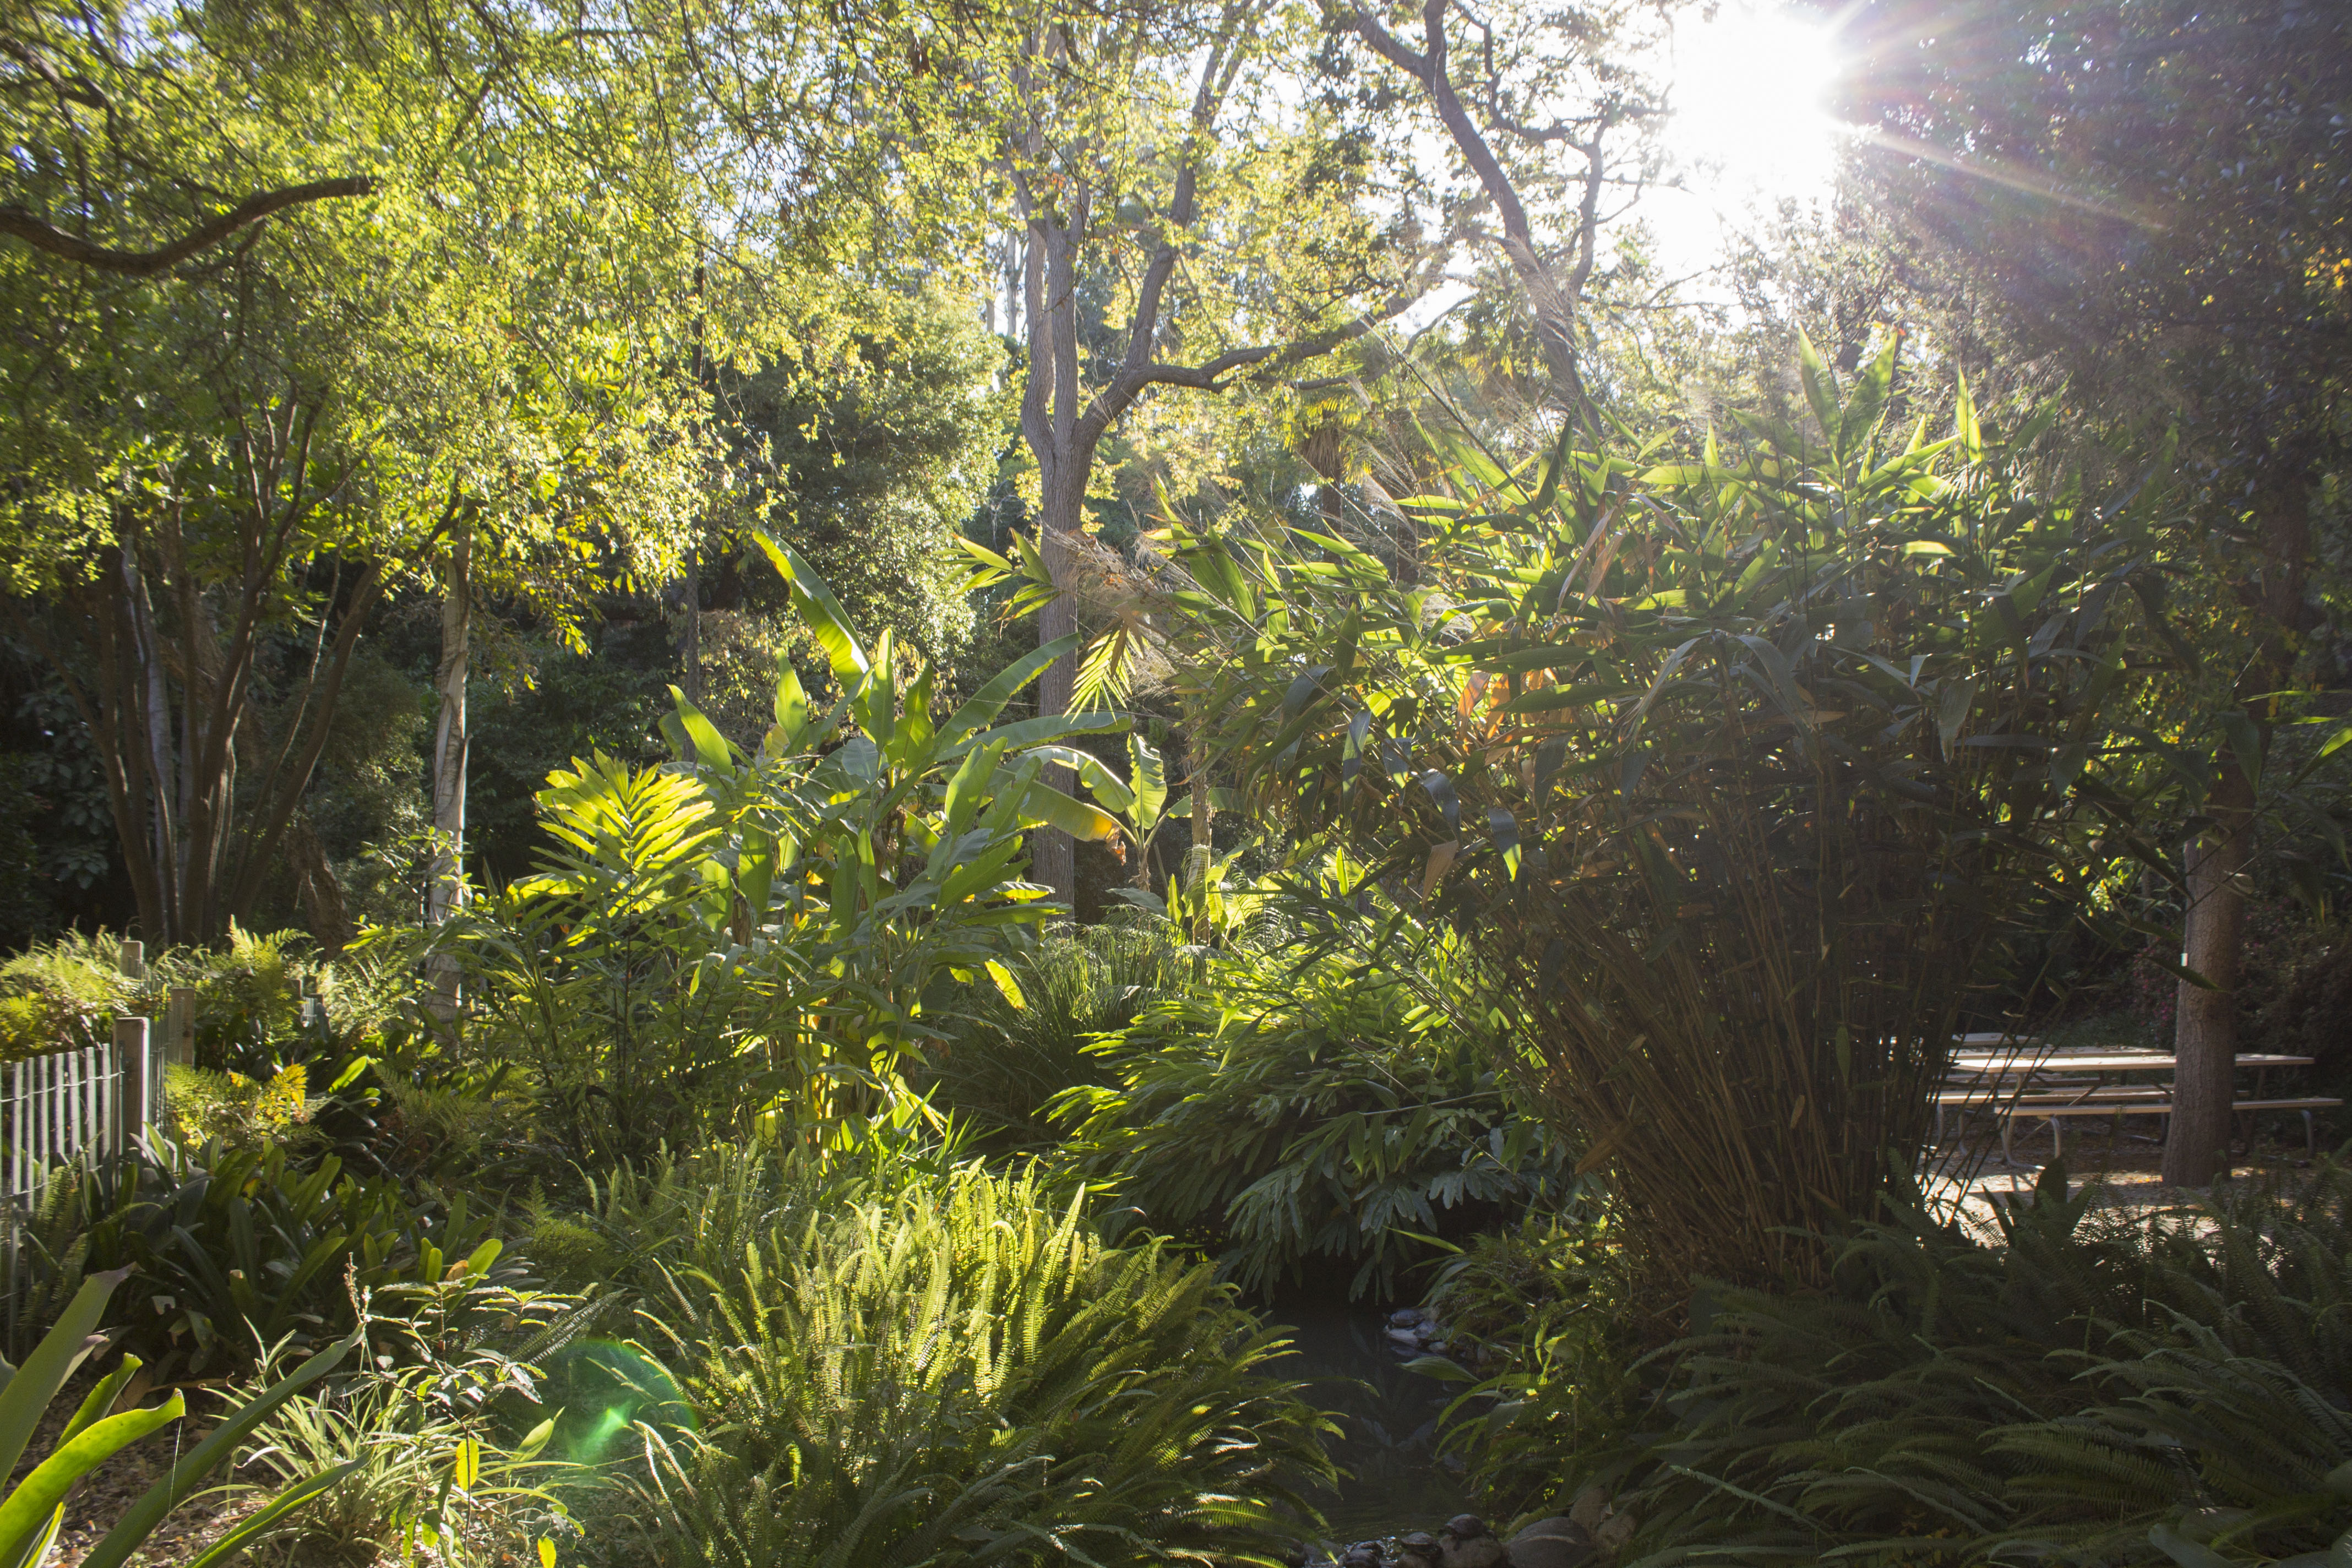 Open to the public, the Mildred E. Mathias Botanical Garden is a botanical wonder hidden in plain sight on the UCLA campus.